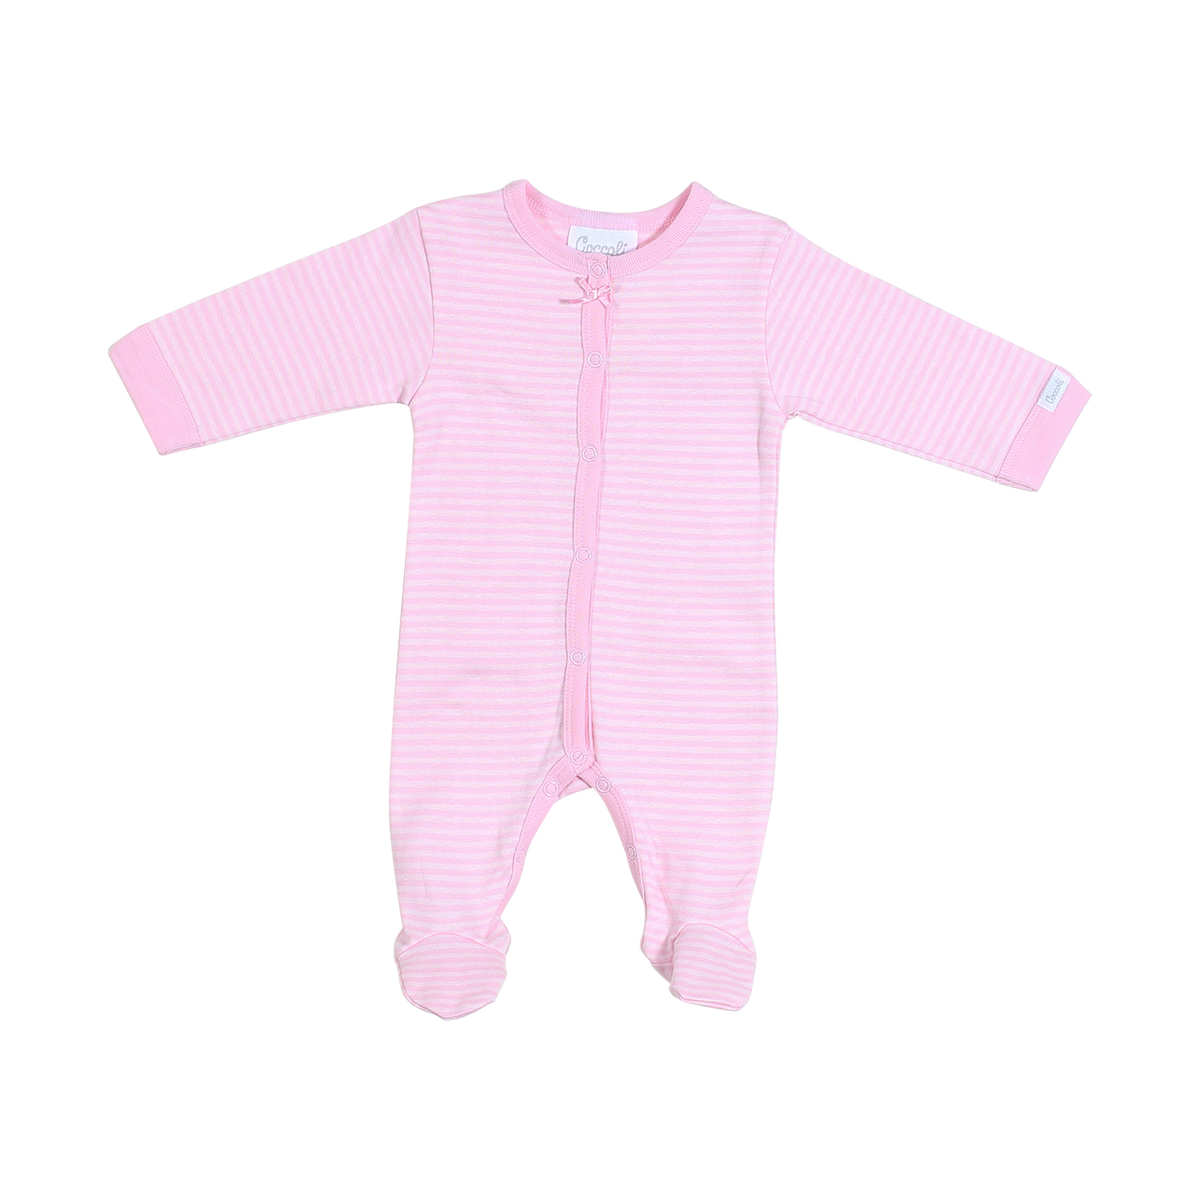 Coccoli | Footie | 1 - 18m | P3724-264